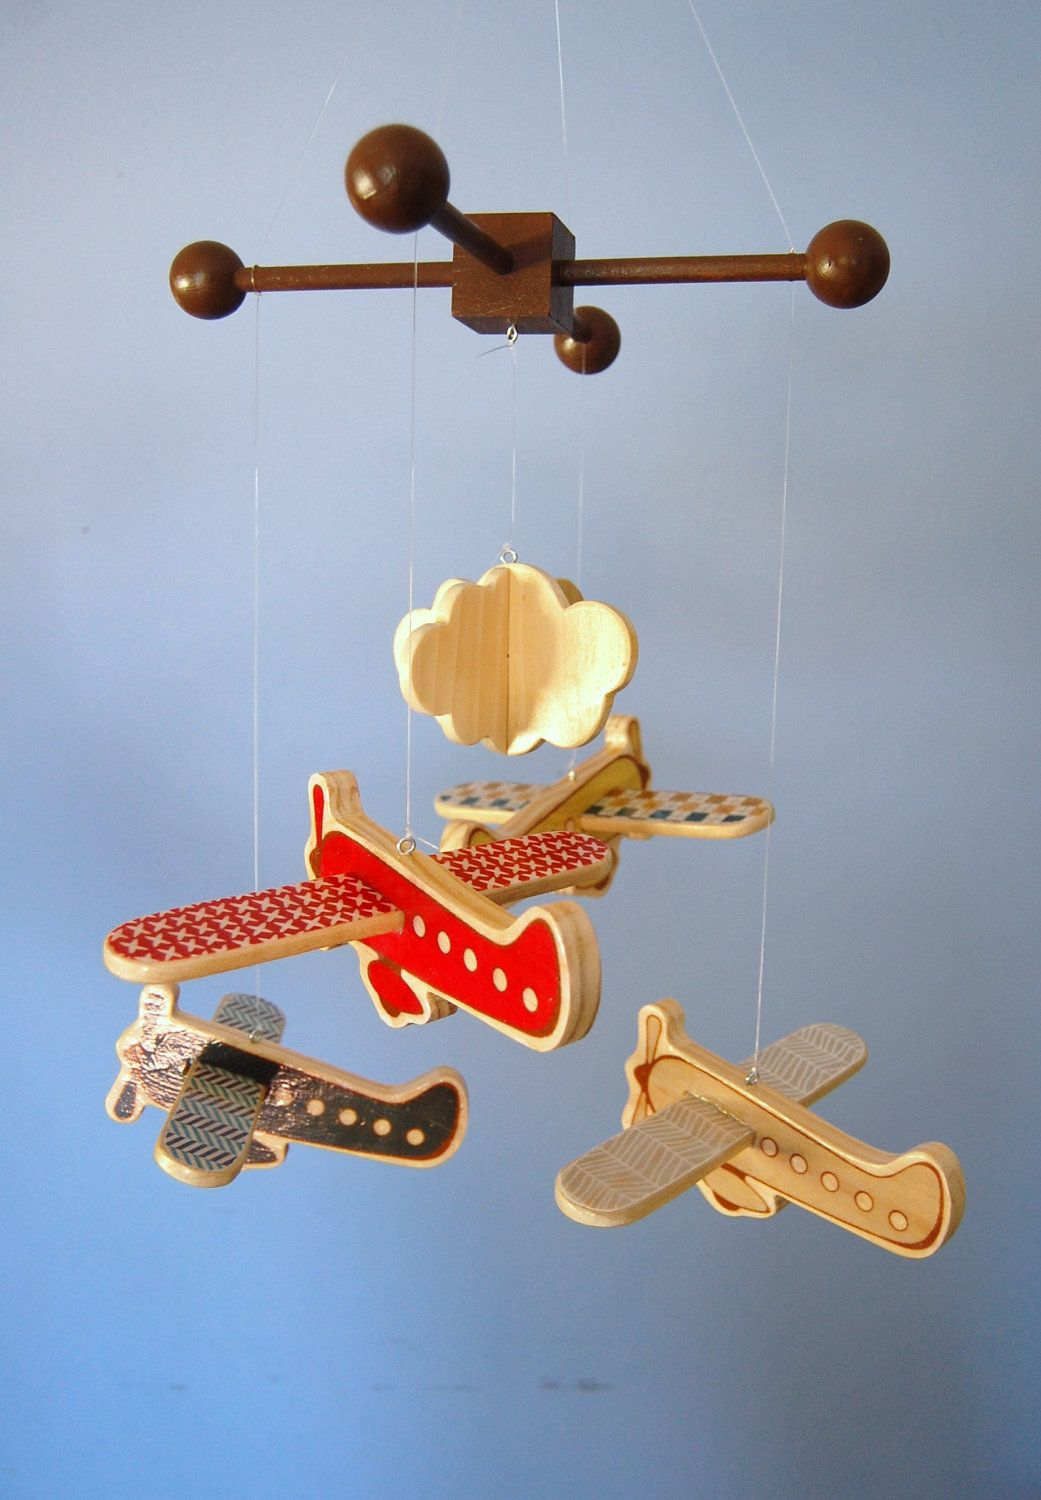 e6f2326302998 Baby Mobile - Airplane Mobile to Coordinate with the Land of Nod Come Fly  With Me Crib Bedding.  90.00